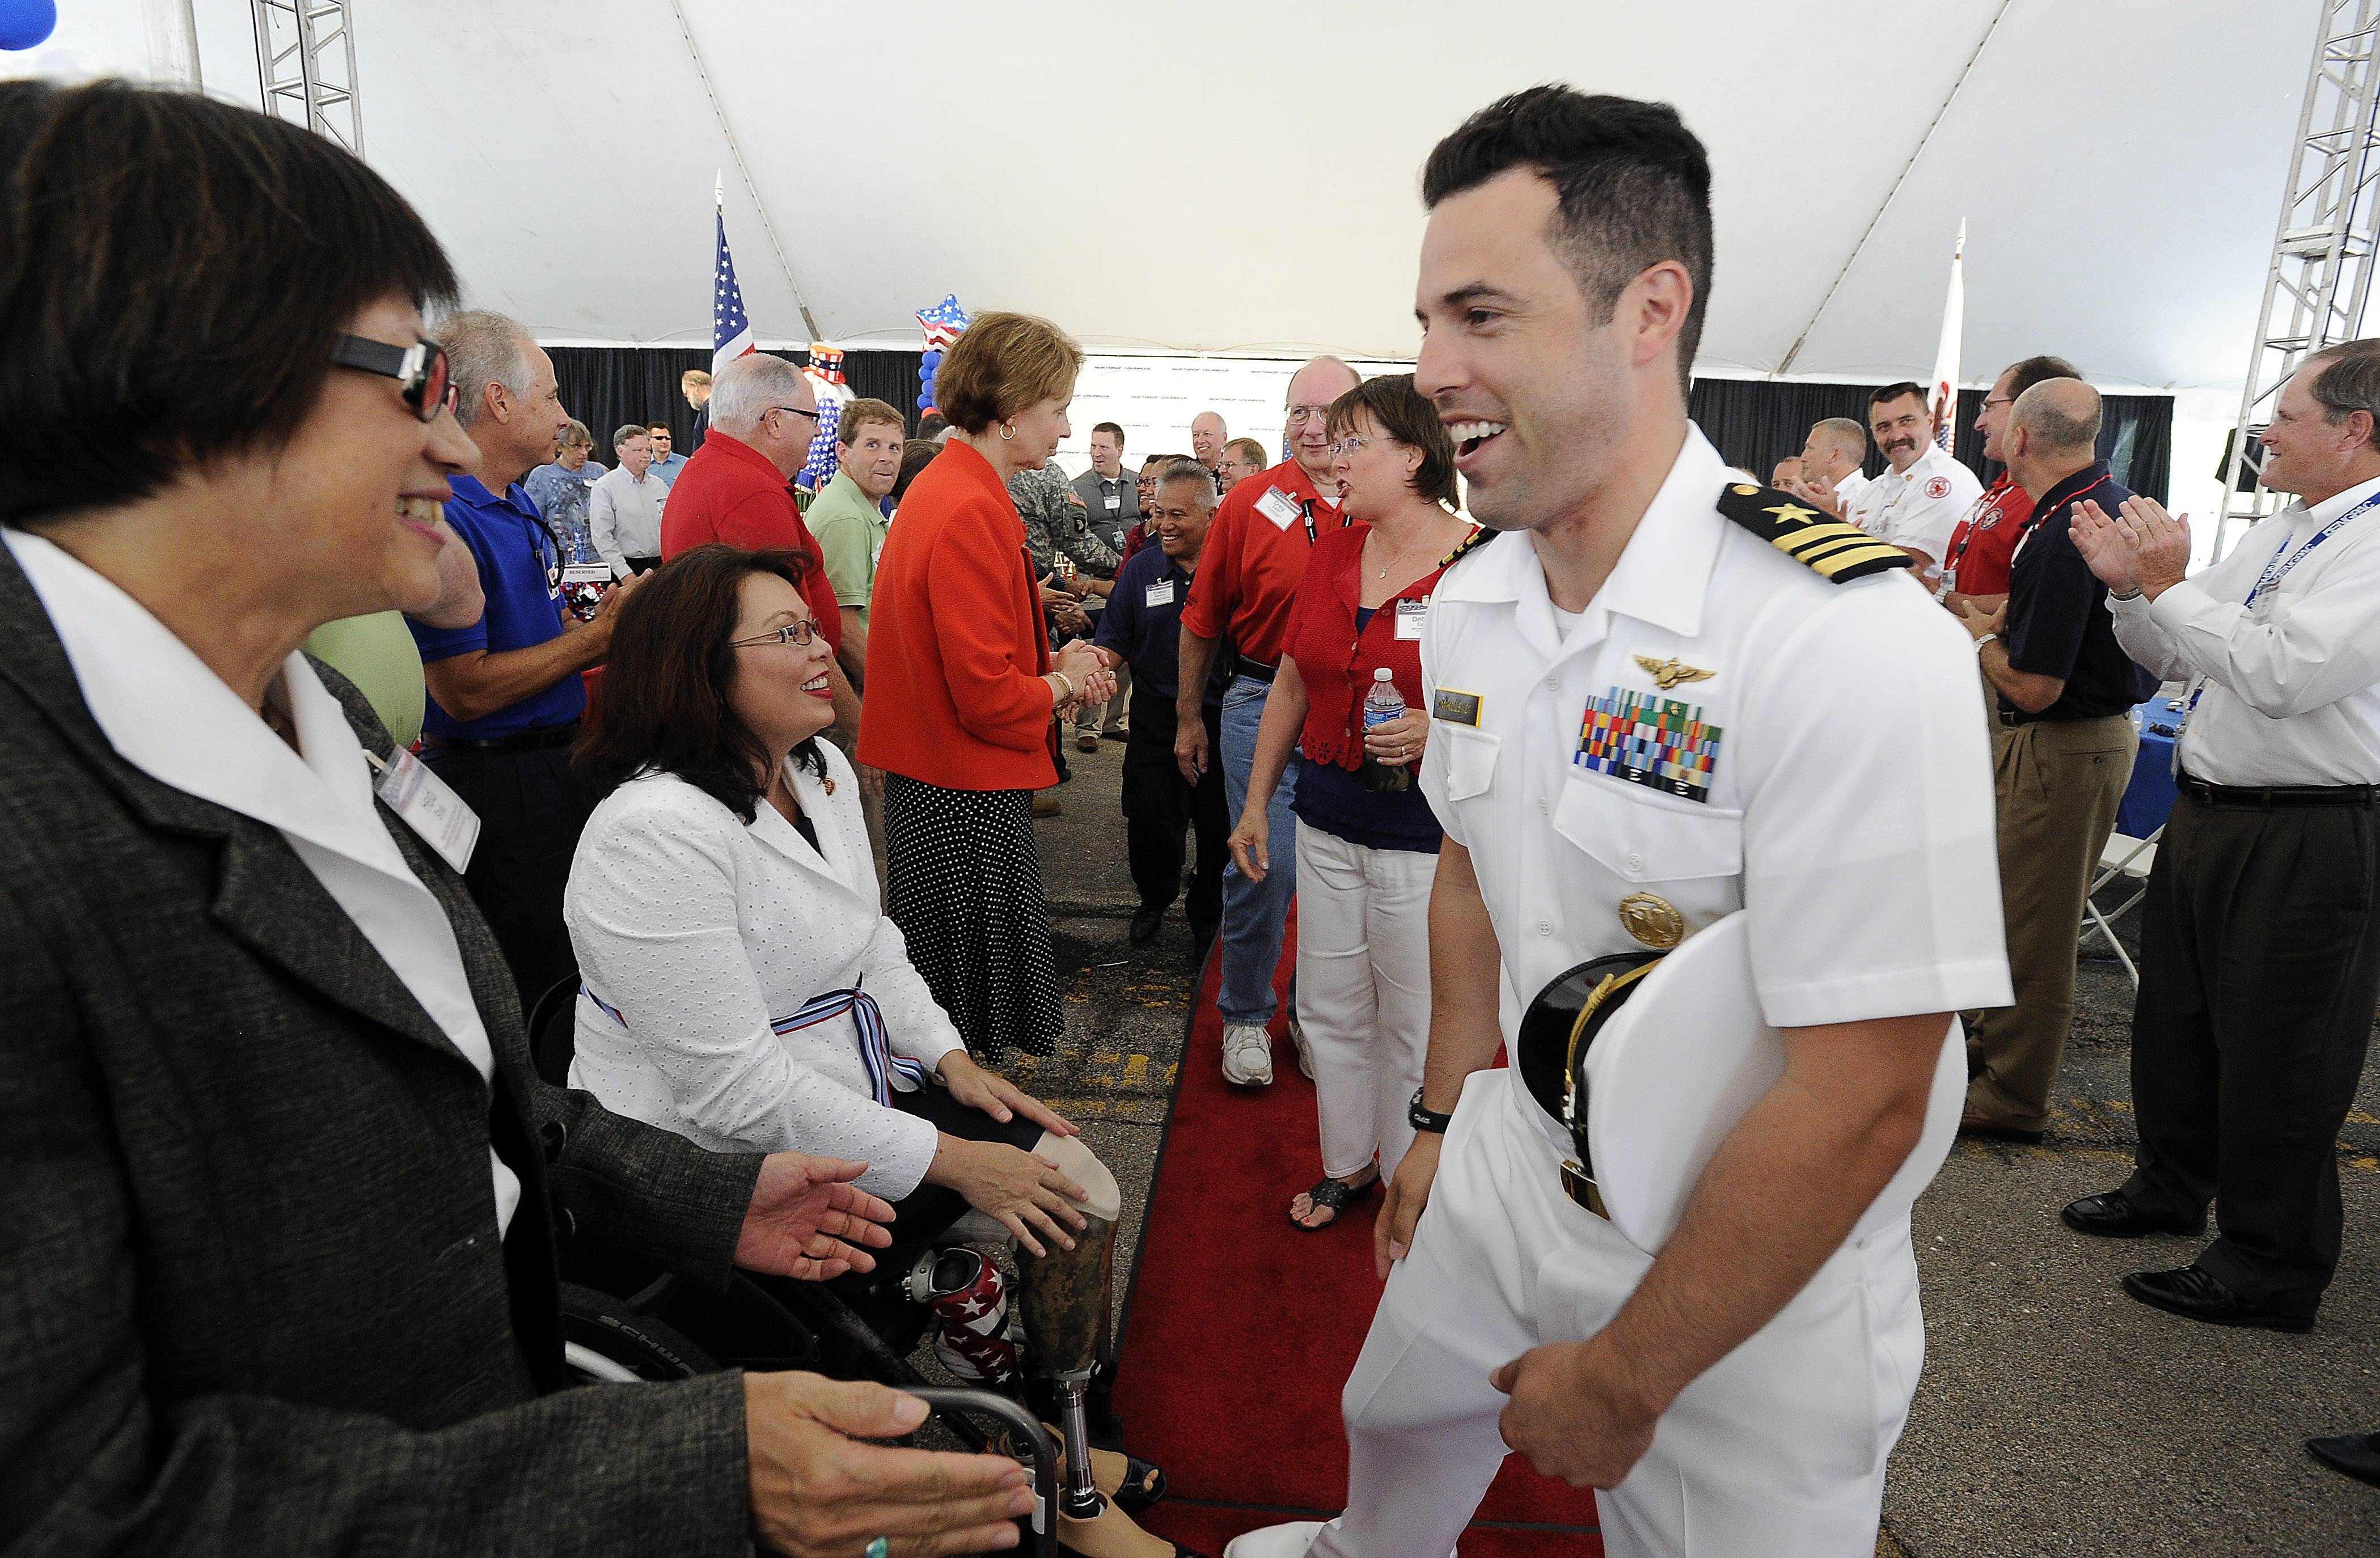 Lt. Cmdr. John Mikols of the Navy who lives in Rolling Meadows greet the Honorable Heidi Shyu, assistant secretary of the Army for acquisitions, logistics and technology and at Northrop Grumman's 2014 America Day on Tuesday in Rolling Meadows.